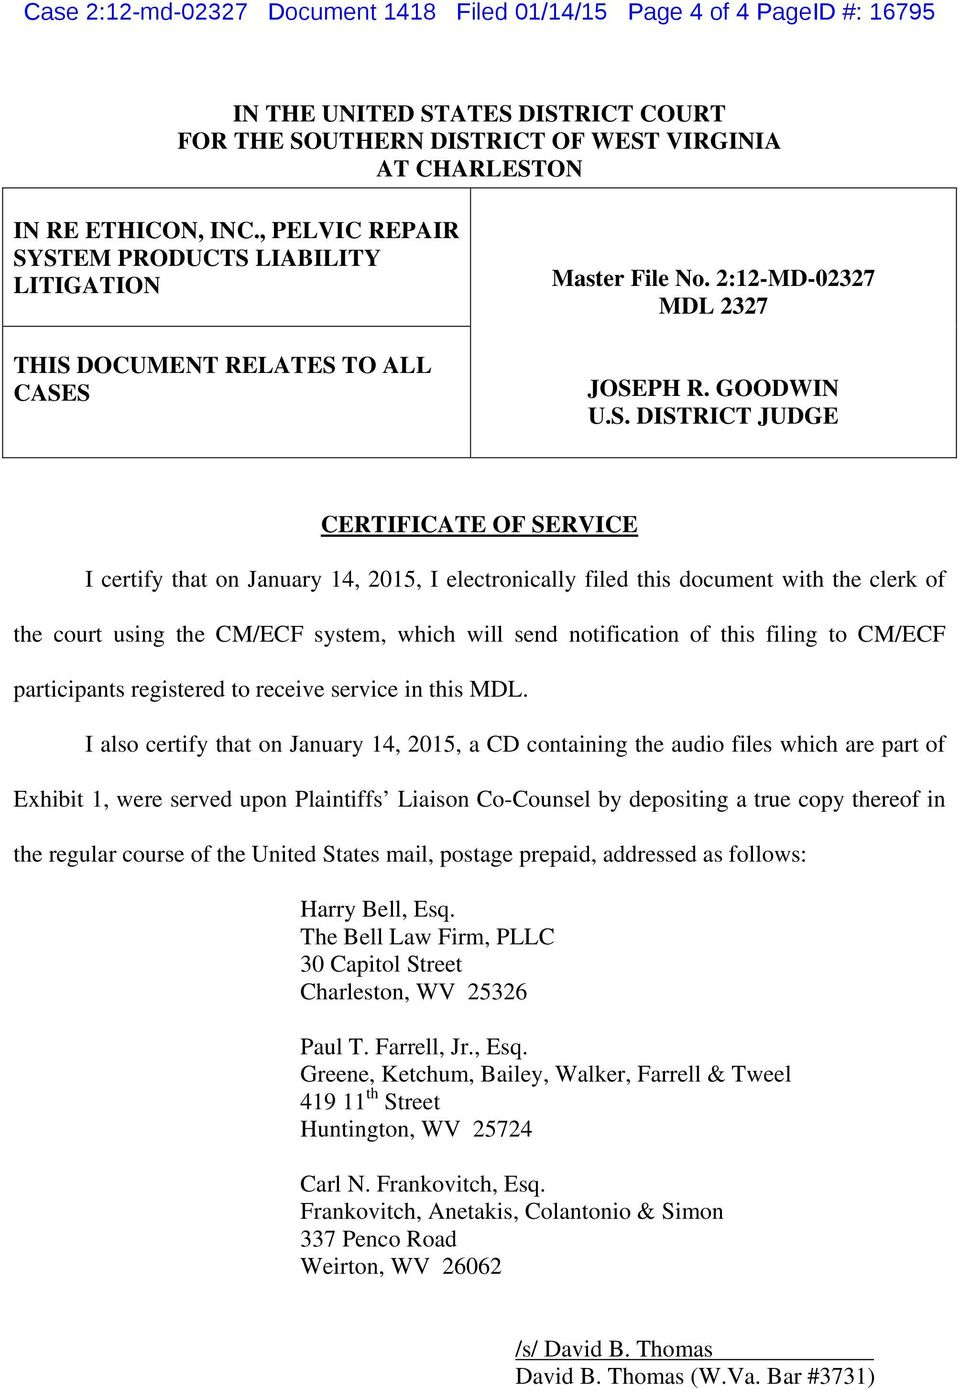 Case 2:12-md Document 1418 Filed 01/14/15 Page 1 of 4 PageID #: PDF